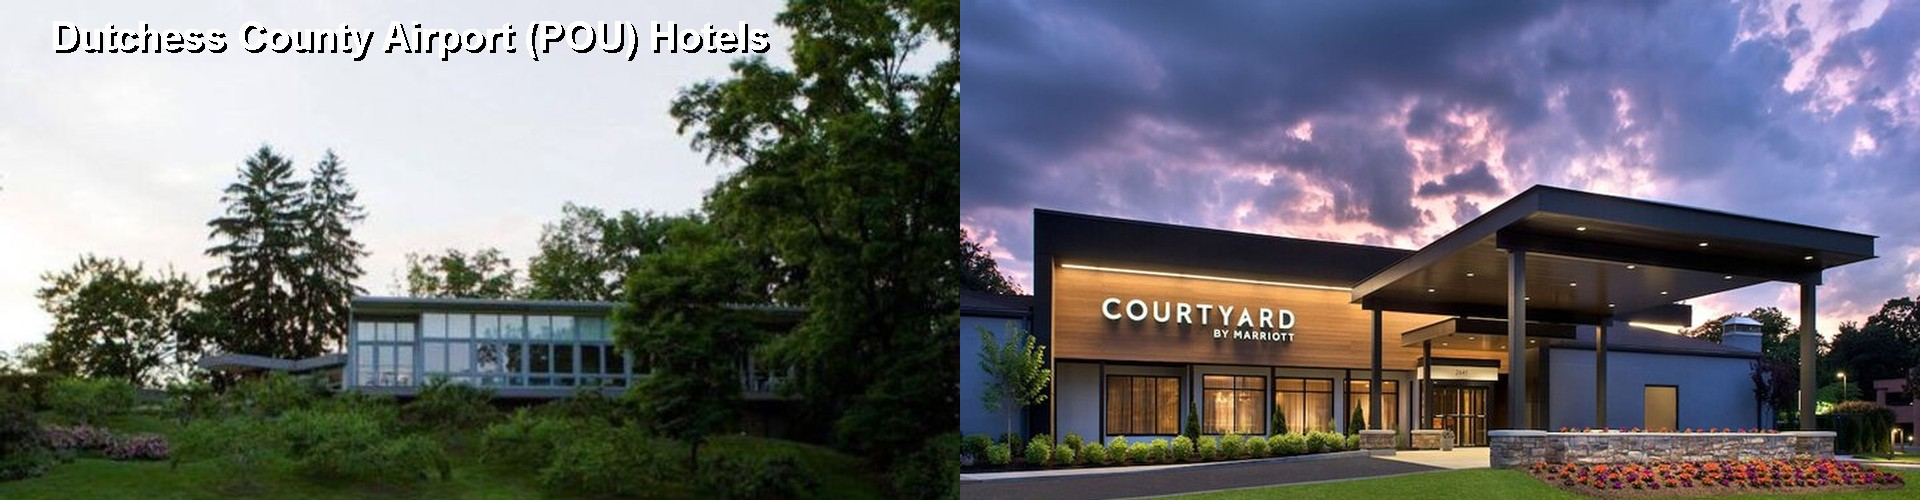 5 Best Hotels near Dutchess County Airport (POU)